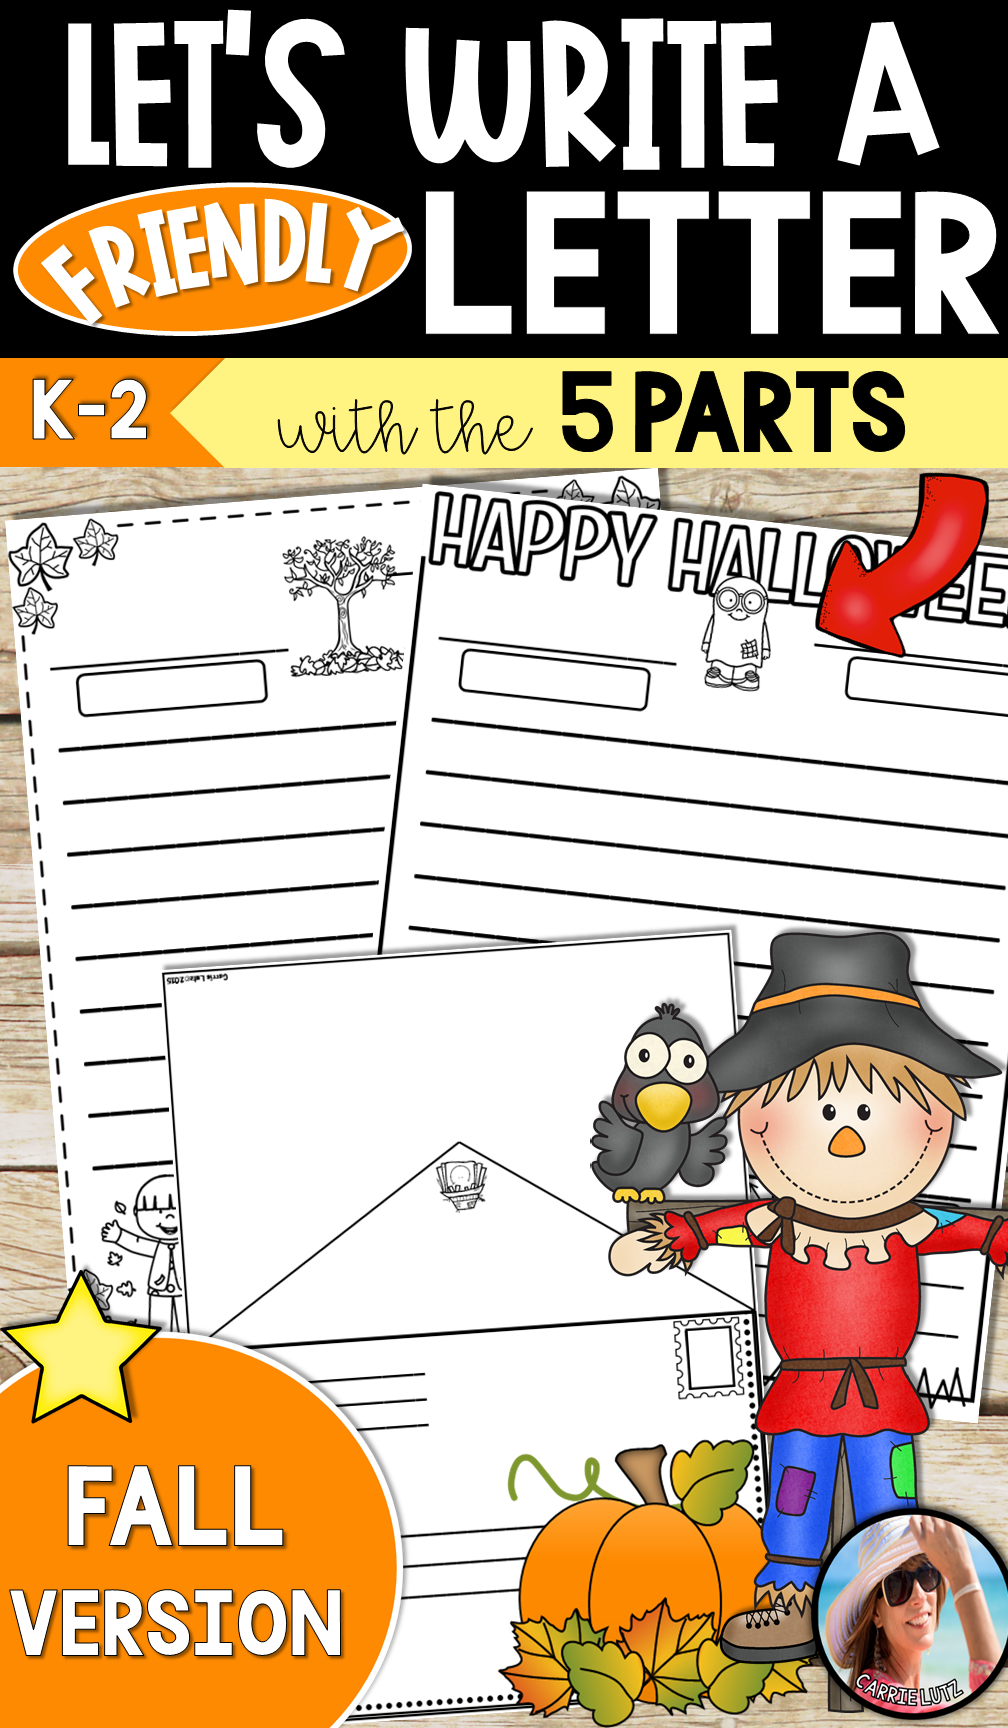 This Friendly Letter Resource is loaded with engaging ways